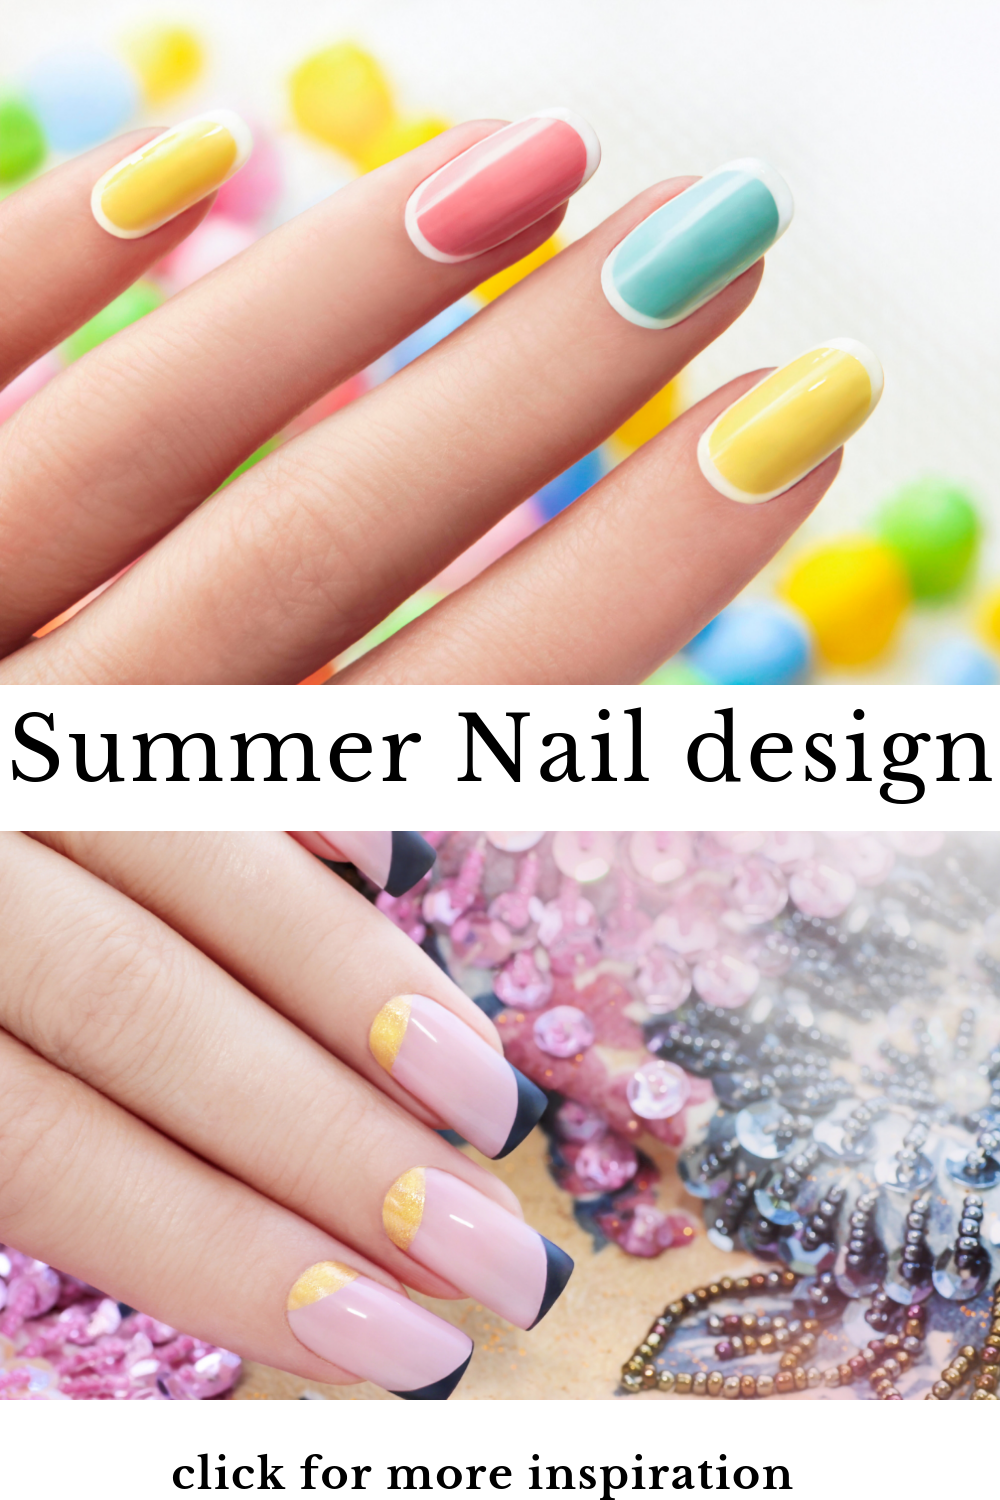 Wondering how to make your nails look gorgeous this summer? Check this post for summer nail colour either you prefer shellac or acrylic this simple bright, cute summer nail glitters. We got you covered. my favorite is #4 simply brings out the best in me. #nails #nailtutorials #beauty #chic #makeup #bossbabe / summer nail colour /beauty hacks